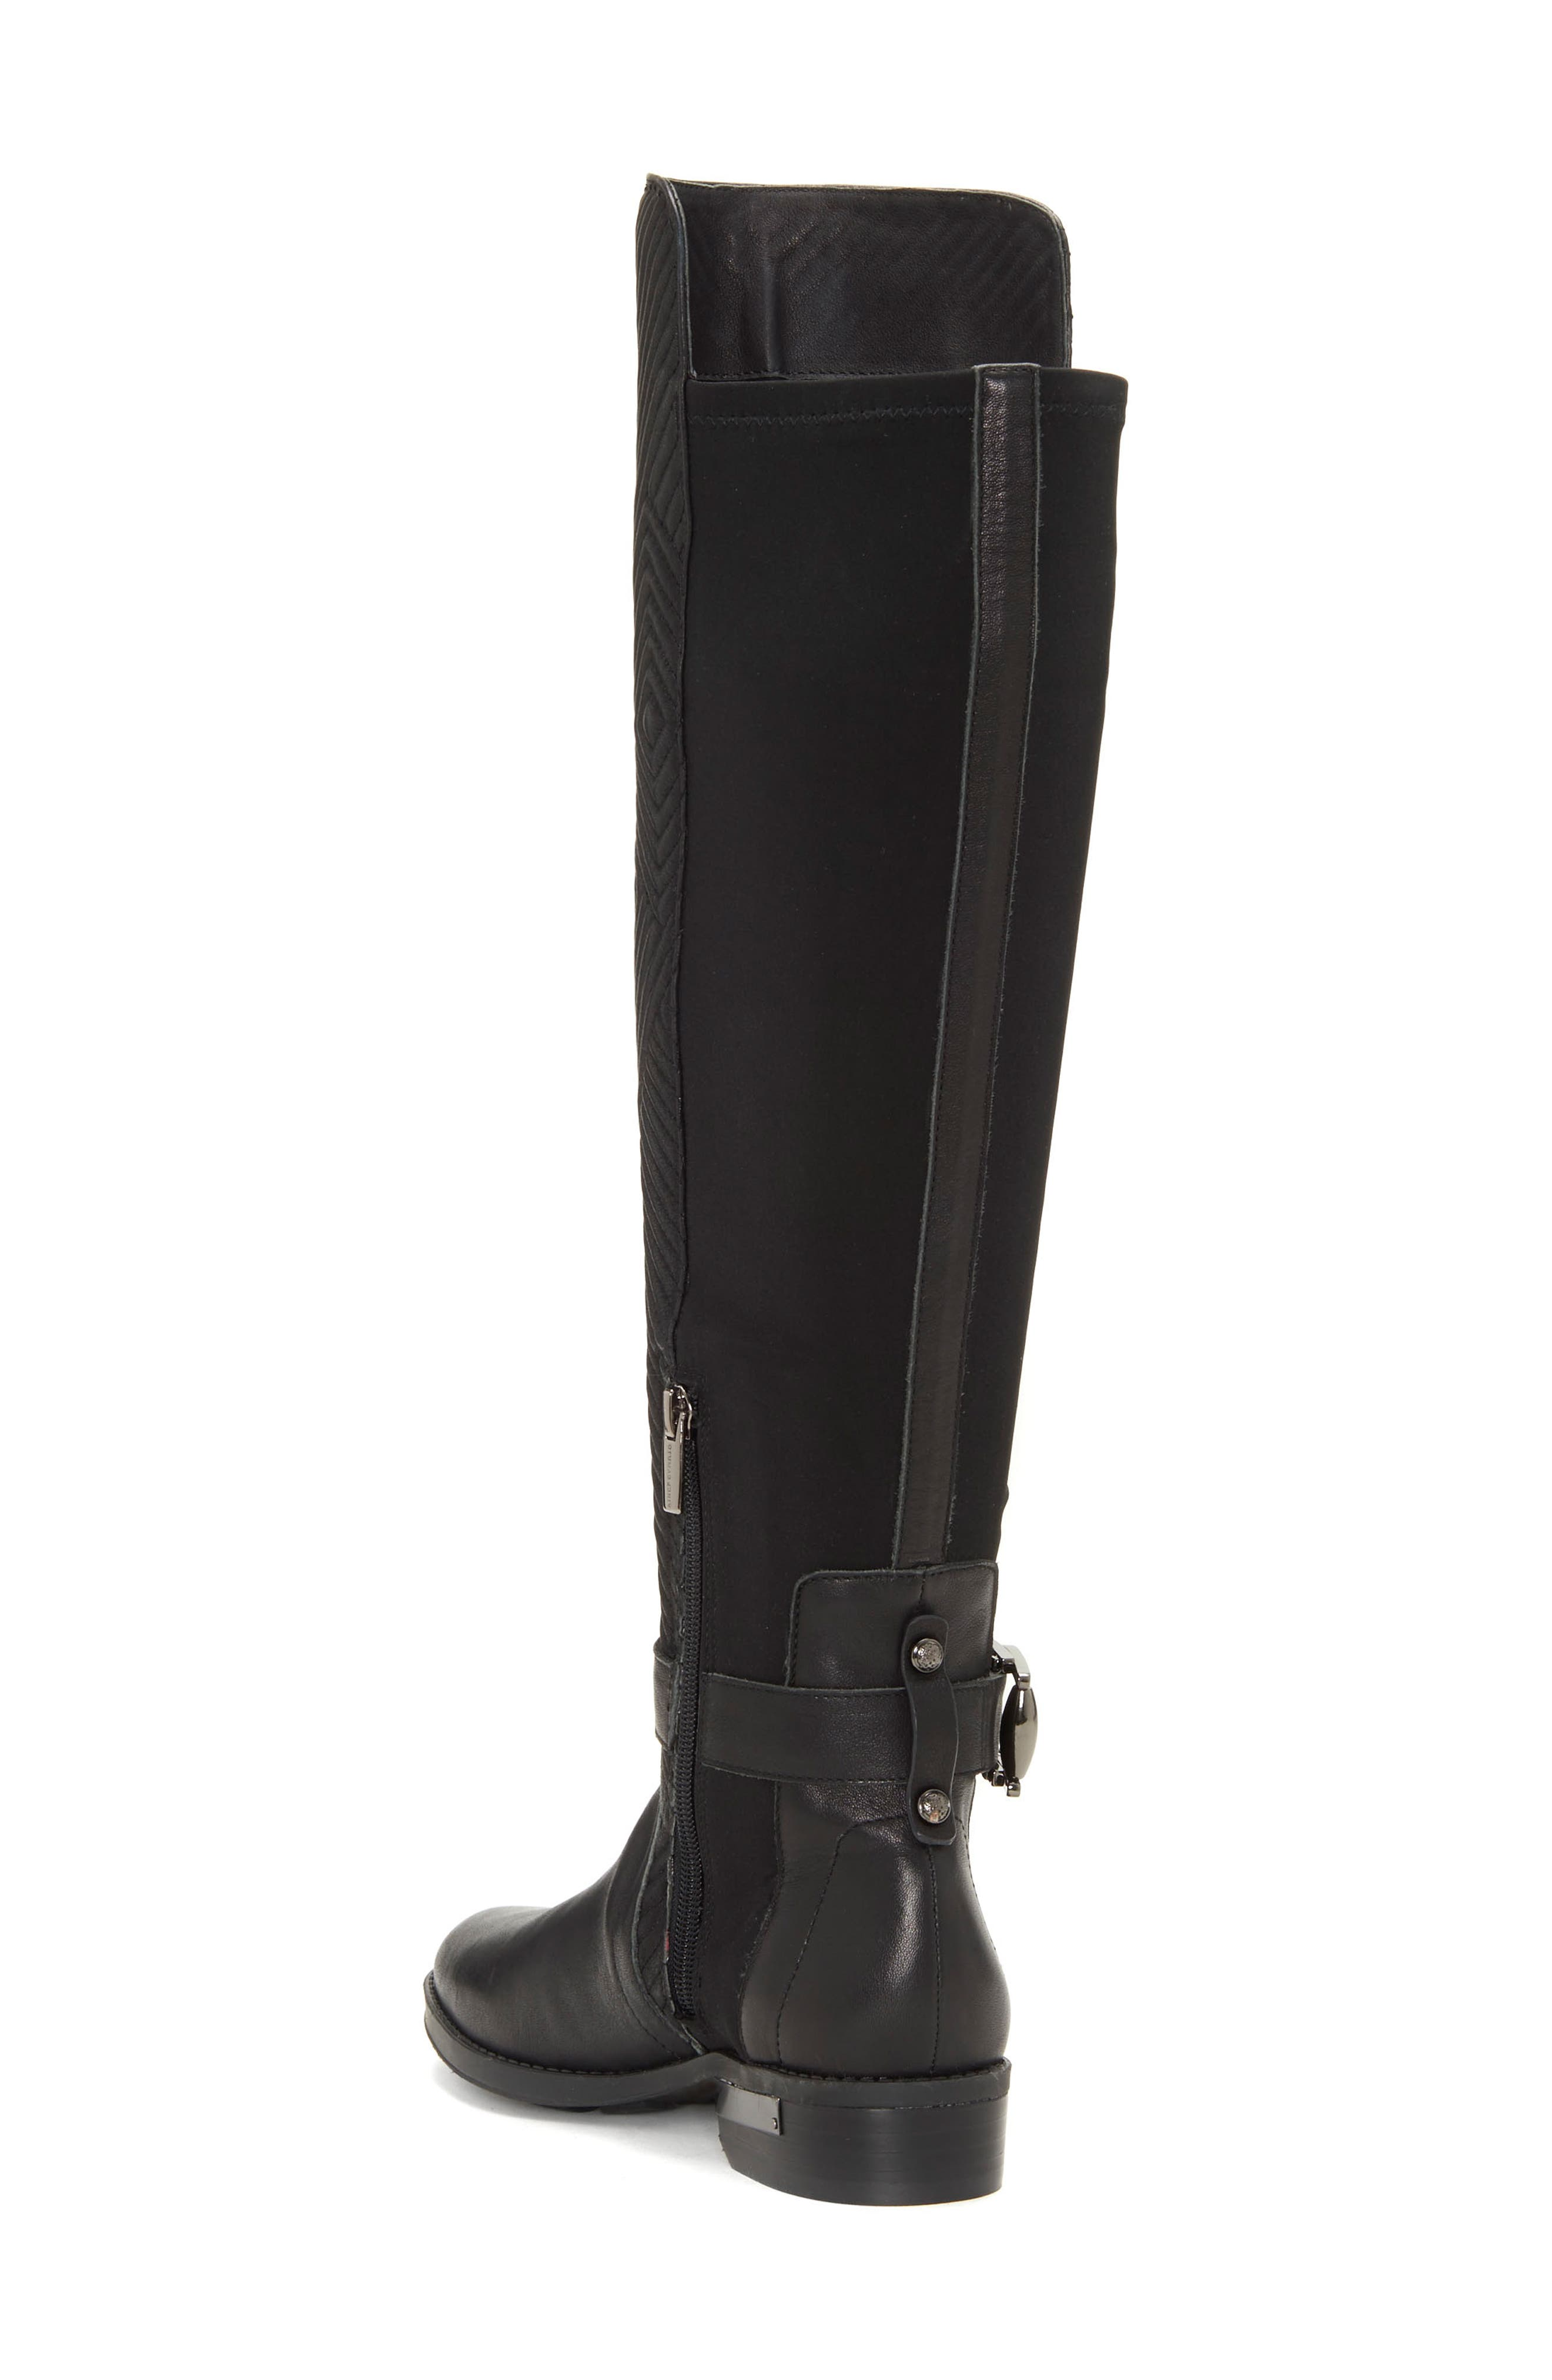 Pordalia Over-the-Knee Boot,                             Alternate thumbnail 2, color,                             BLACK LEATHER WIDE